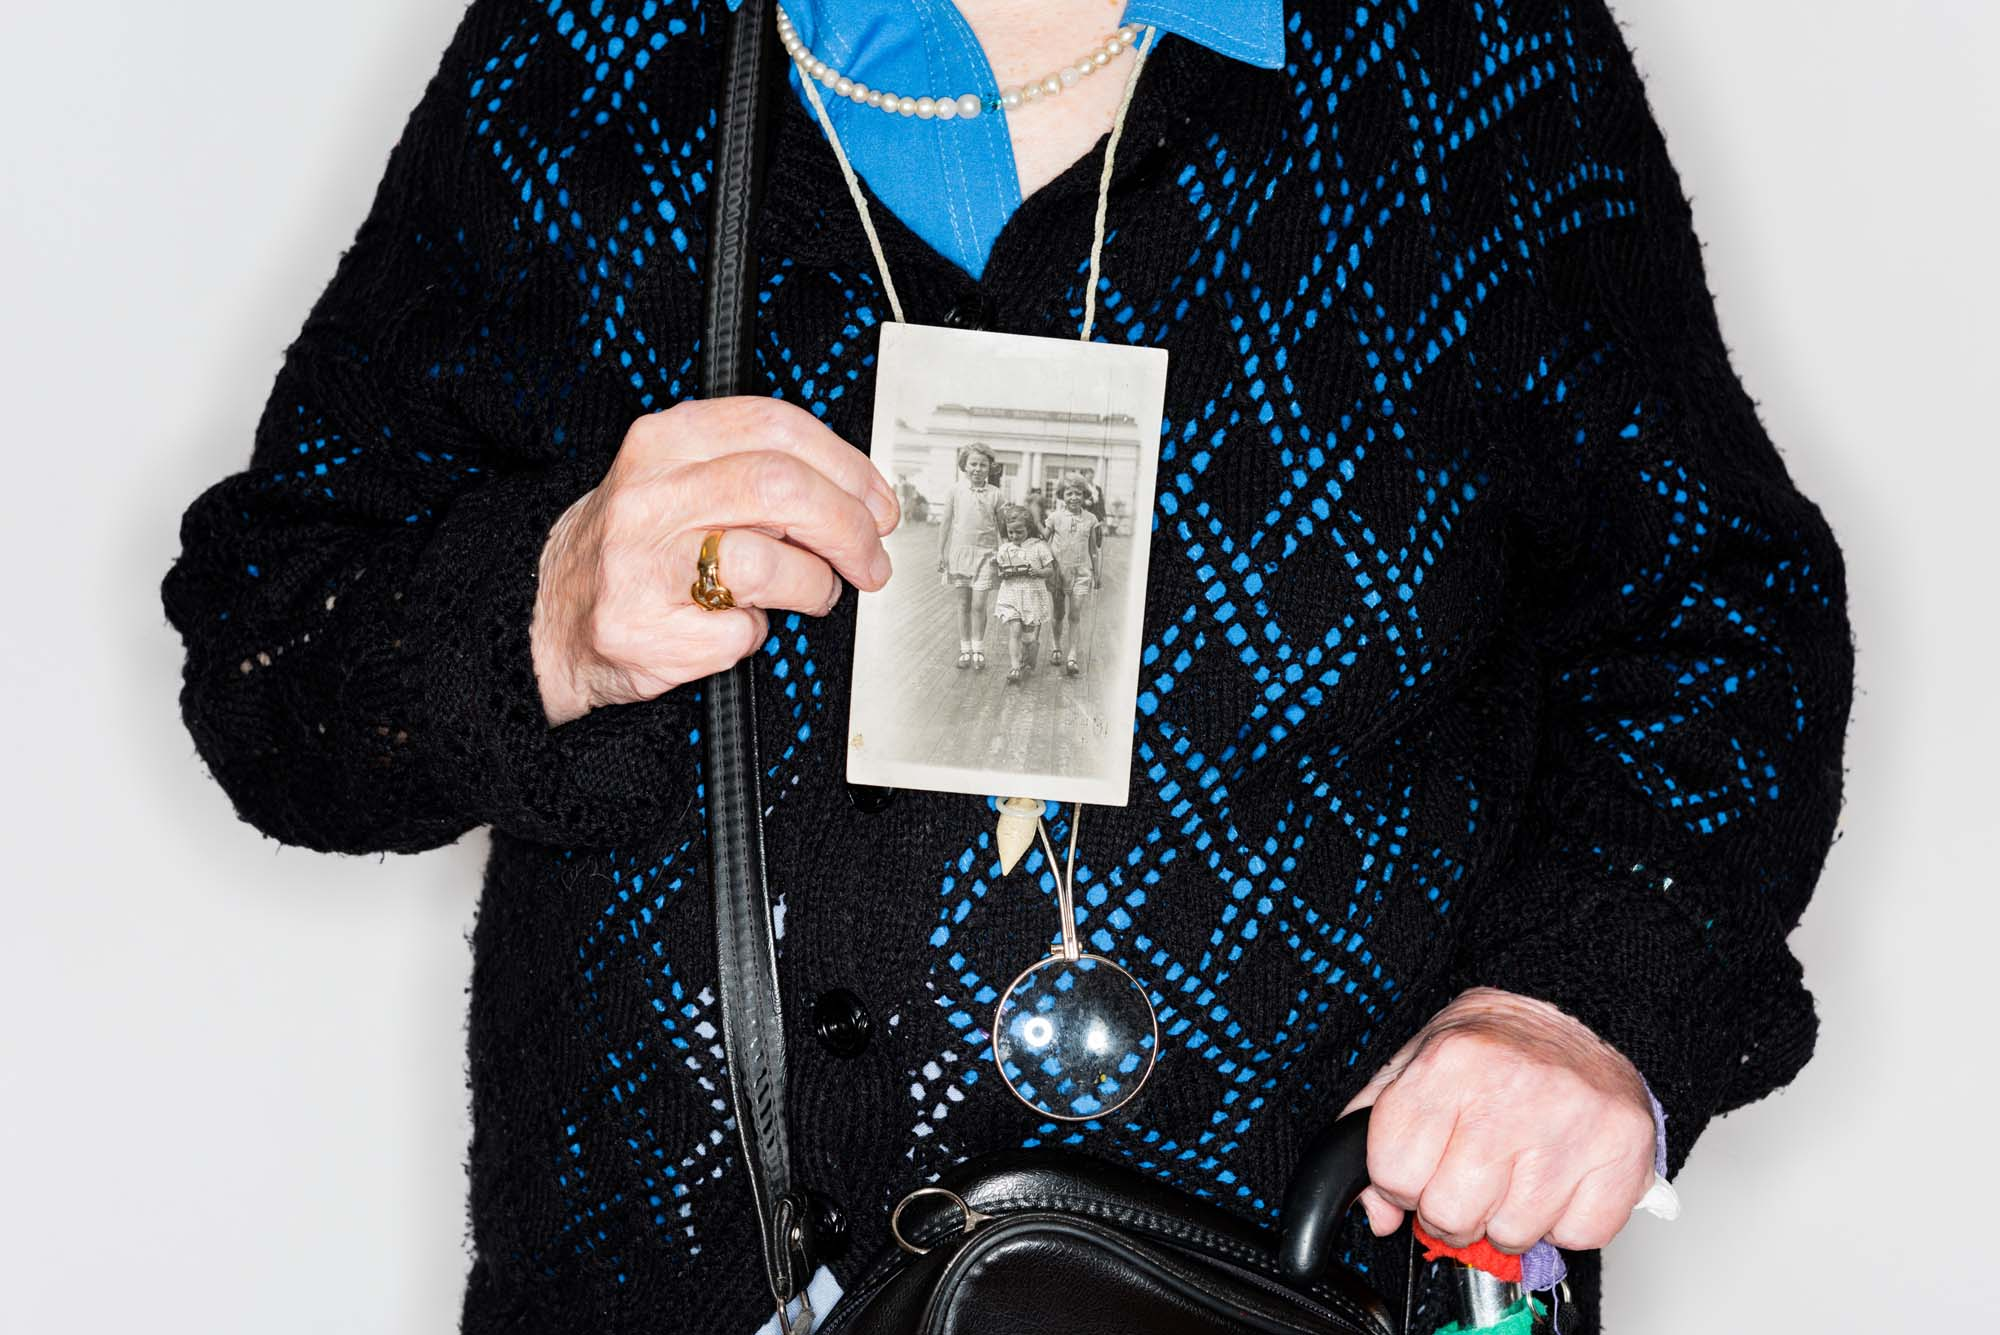 a copped photo of a woman holding up an old black and white photograph